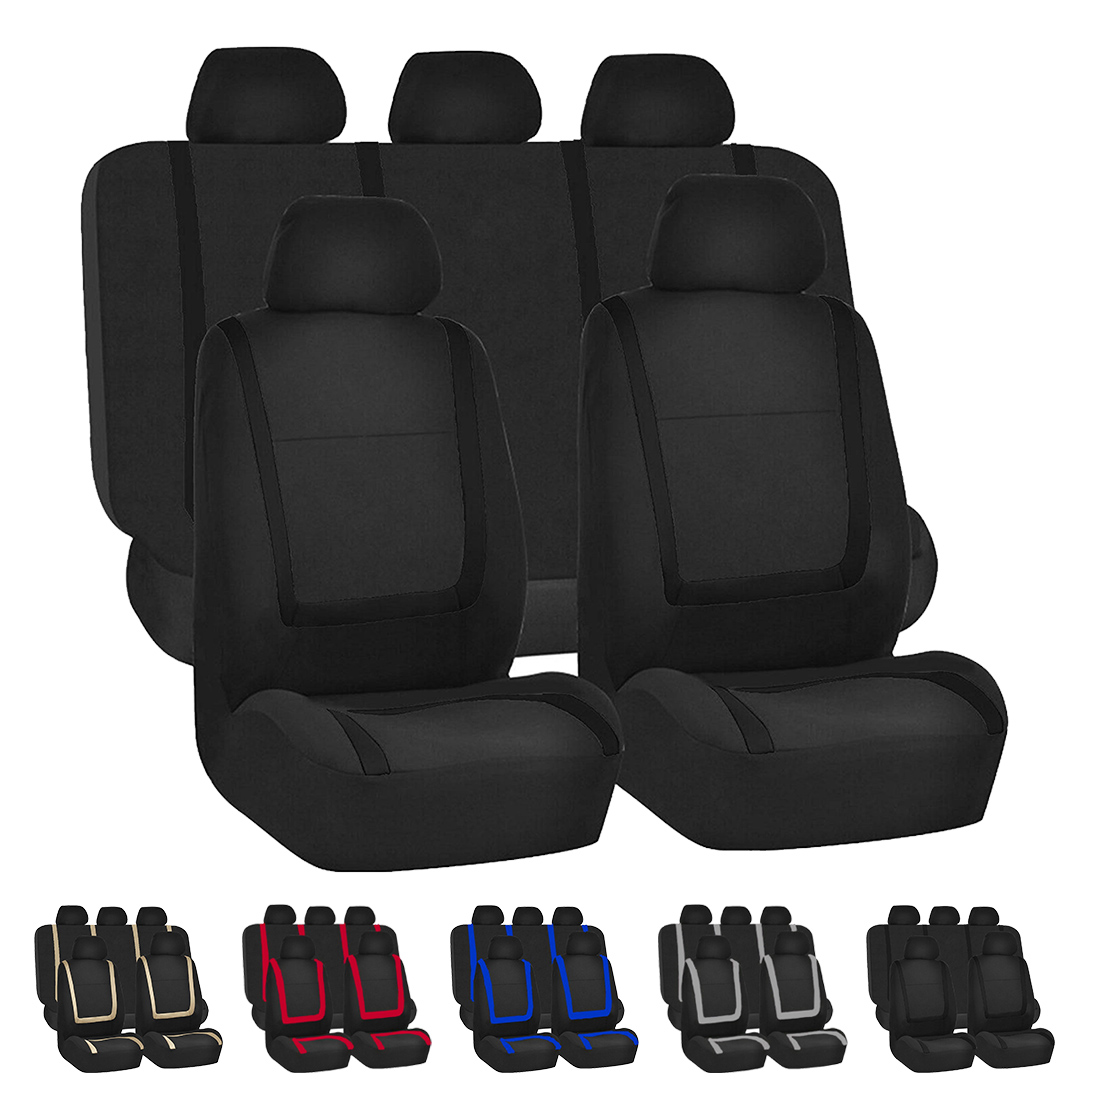 Dewtreetali Car Seat Cover Cloth Fabric 9pcs Universal Automobile Seat Covers Protector Black Car Styling Interior Accessories dewtreetali universal automoblies seat cover four seaons car seat protector full set car accessories car styling for vw bmw audi